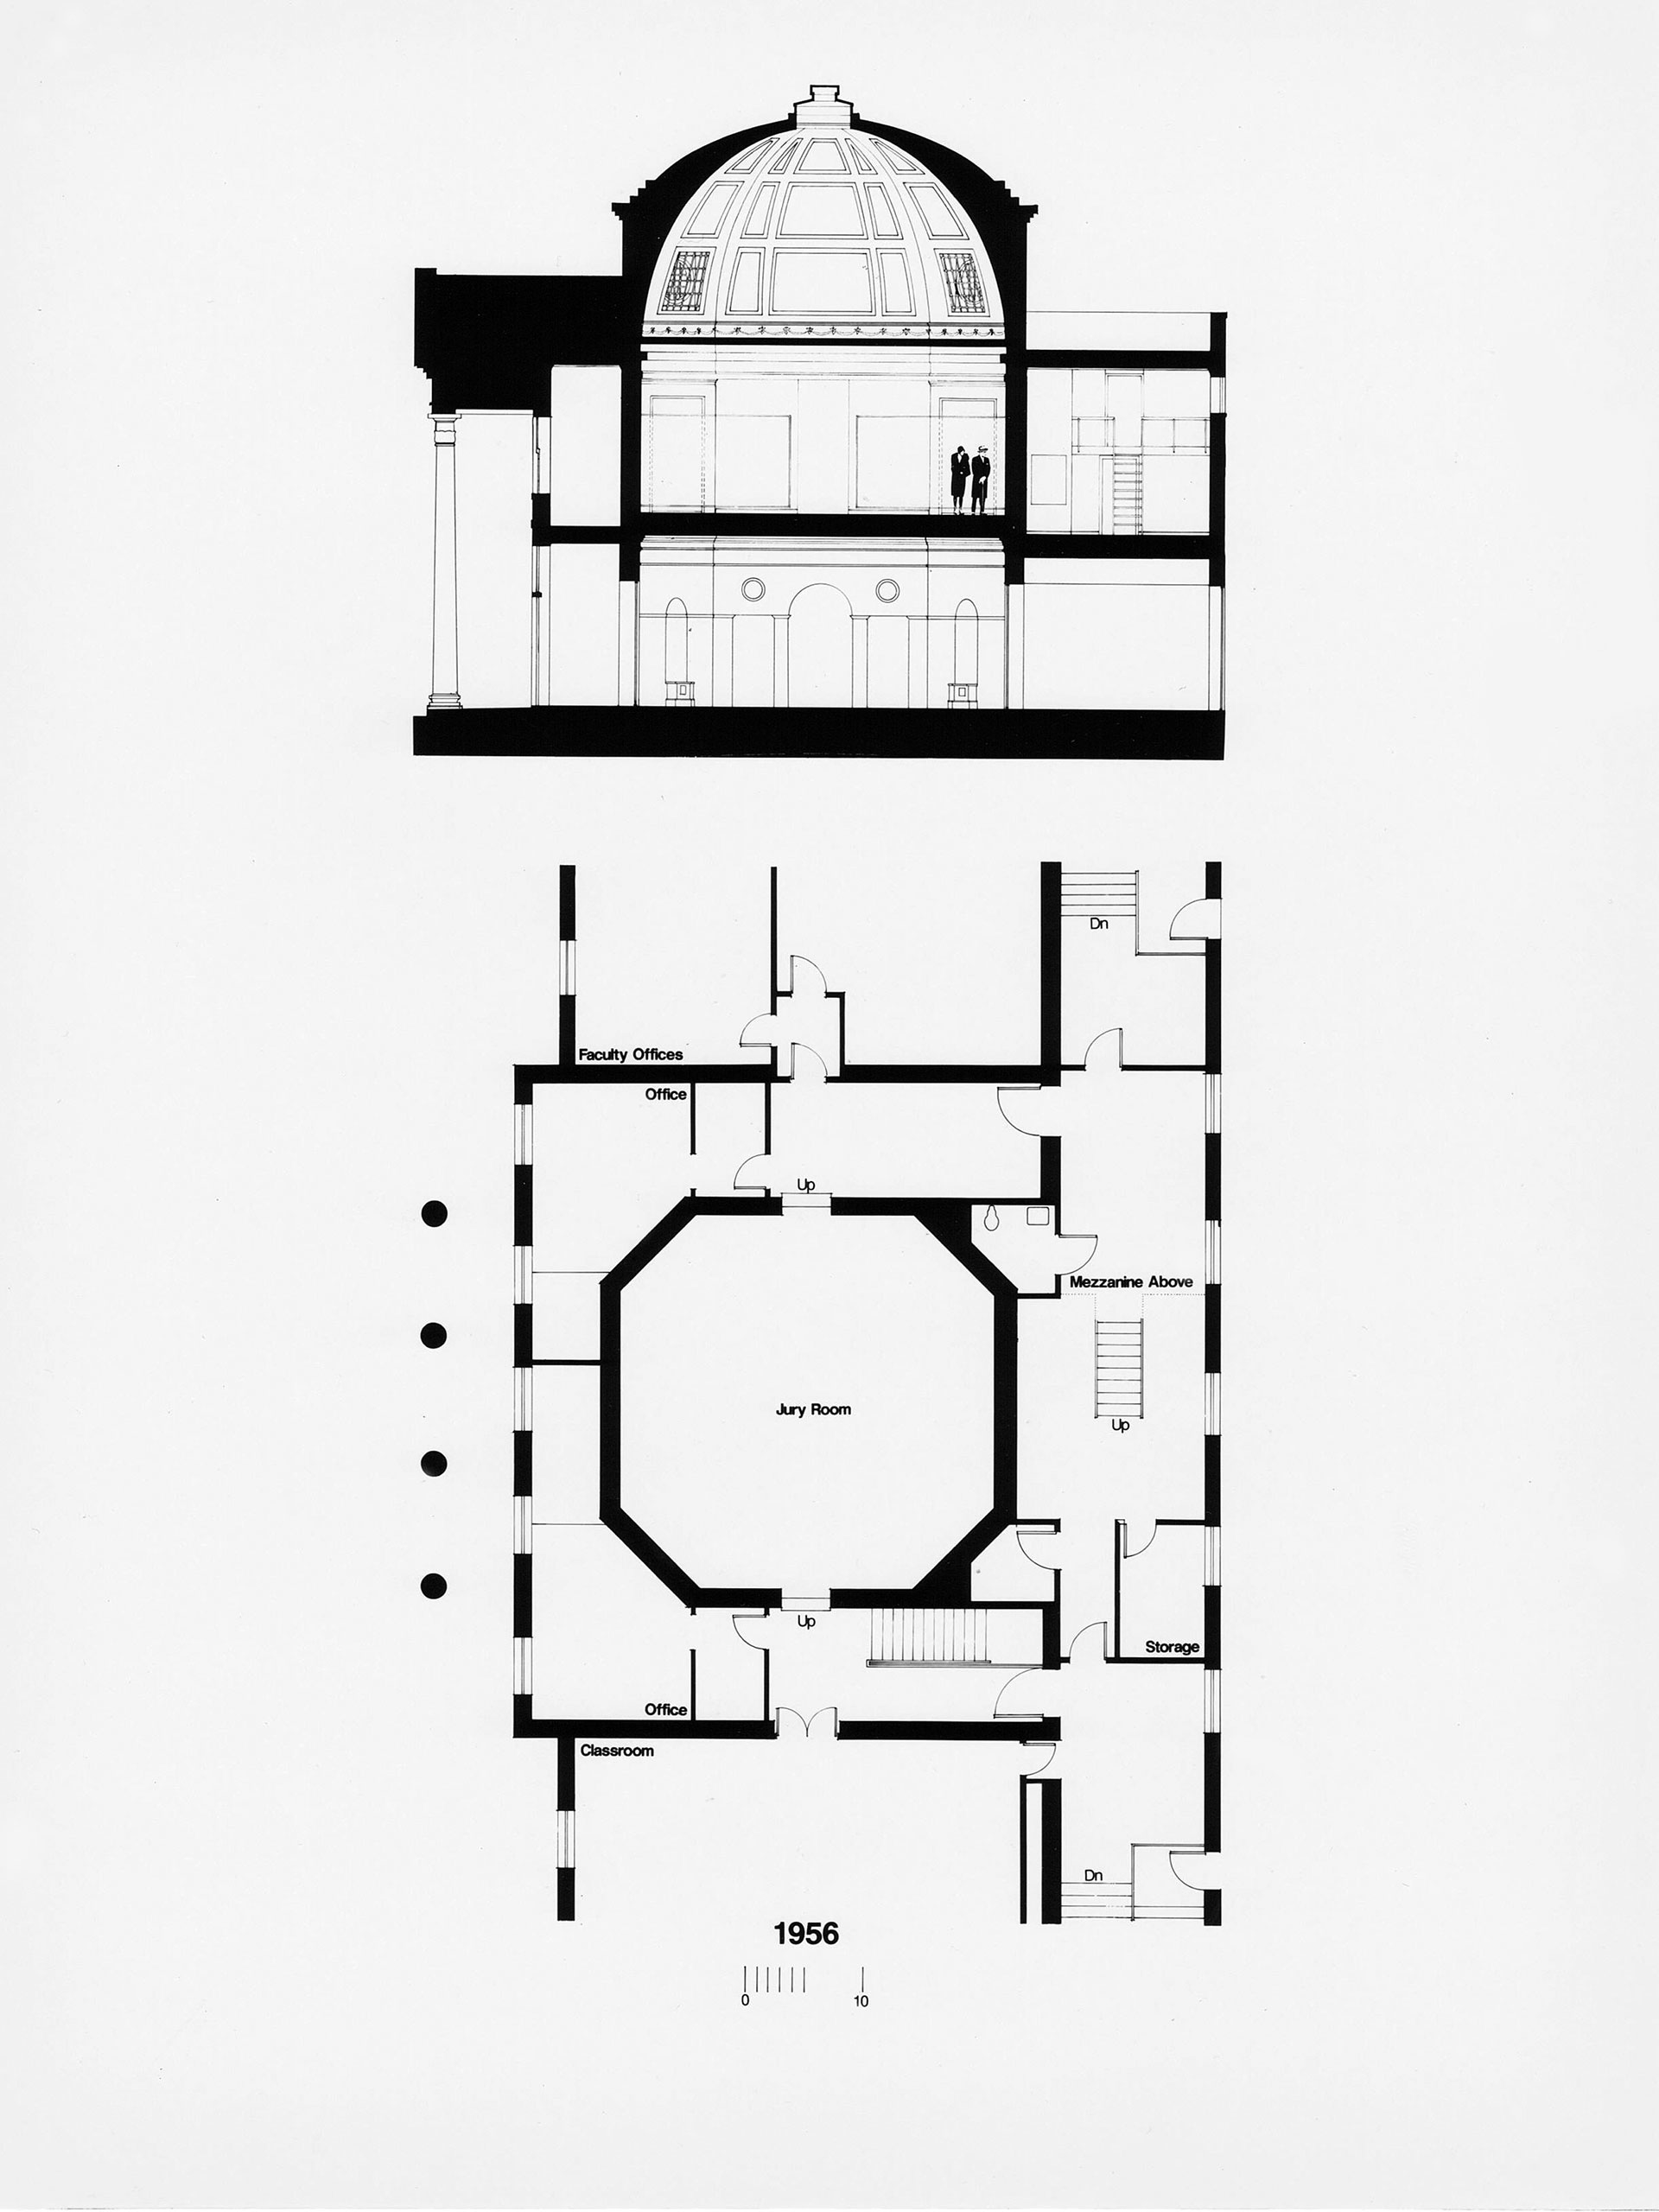 An architectural plan of Brooks Hall as it existed before the 1989 renovation.